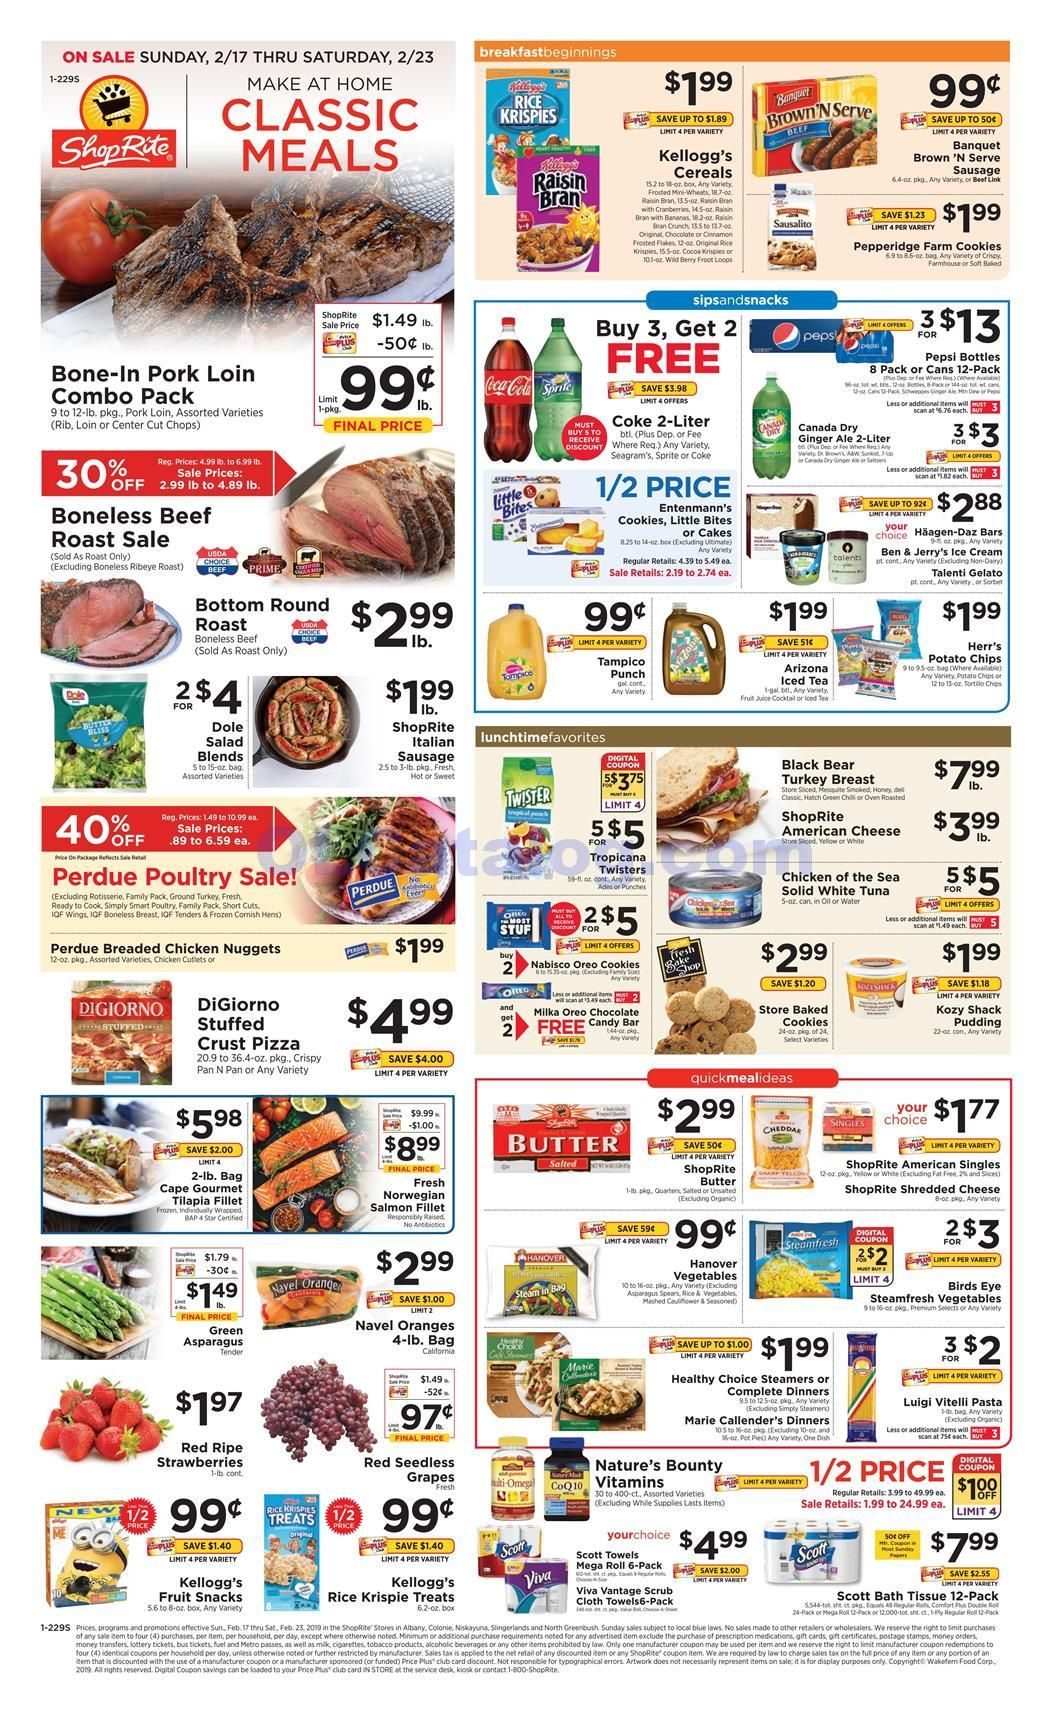 Shoprite Weekly Ad Can Can Sale February 17 23 2019 View The Latest Shoprite Flyer Here Discover The Digital Frozen Appetizers Shoprite Bone In Pork Loin